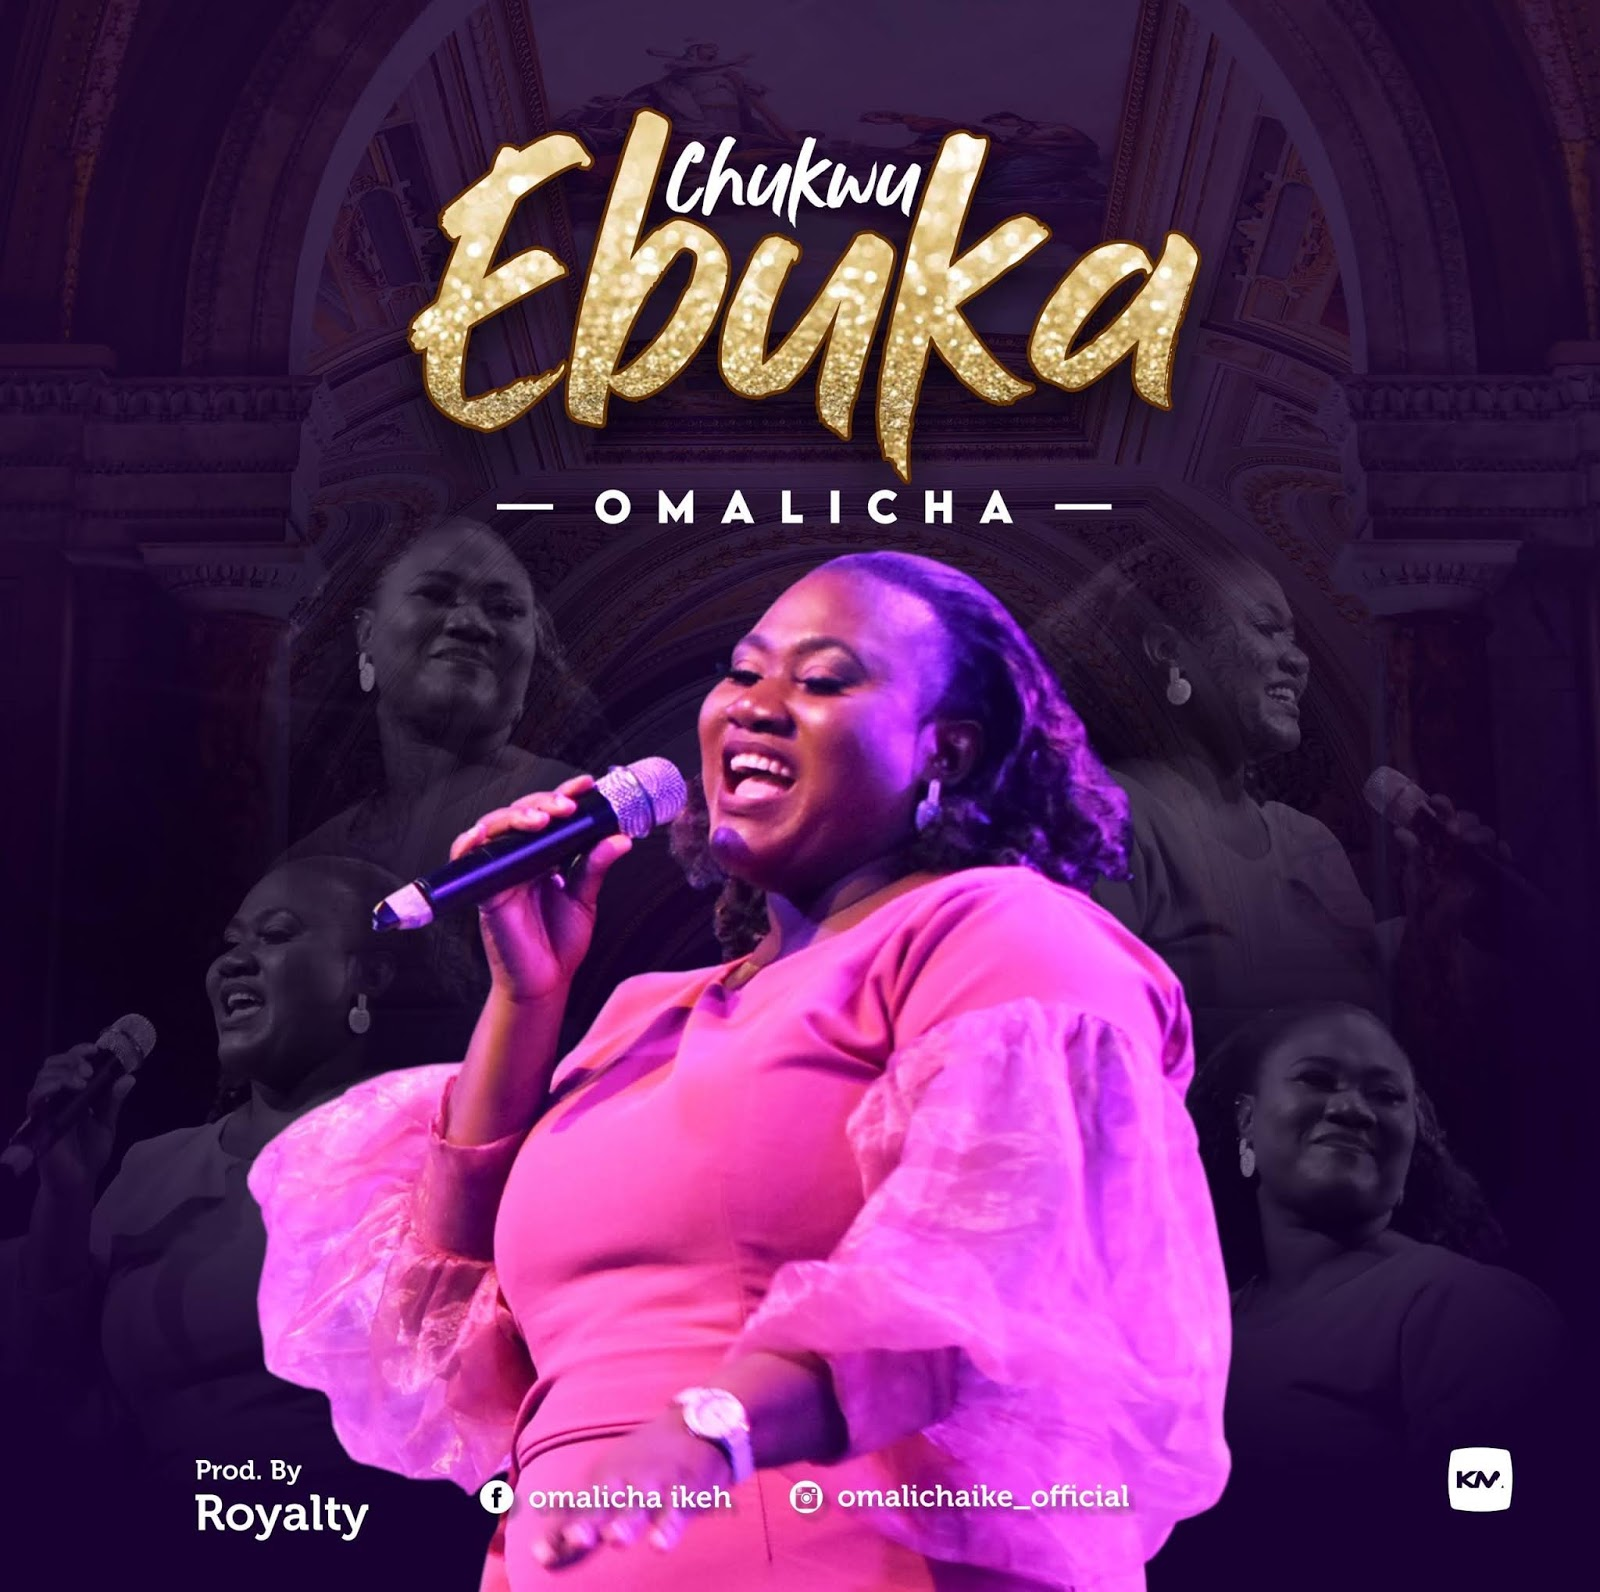 Omalicha Ike - Chukwu Ebuka Mp3 Download